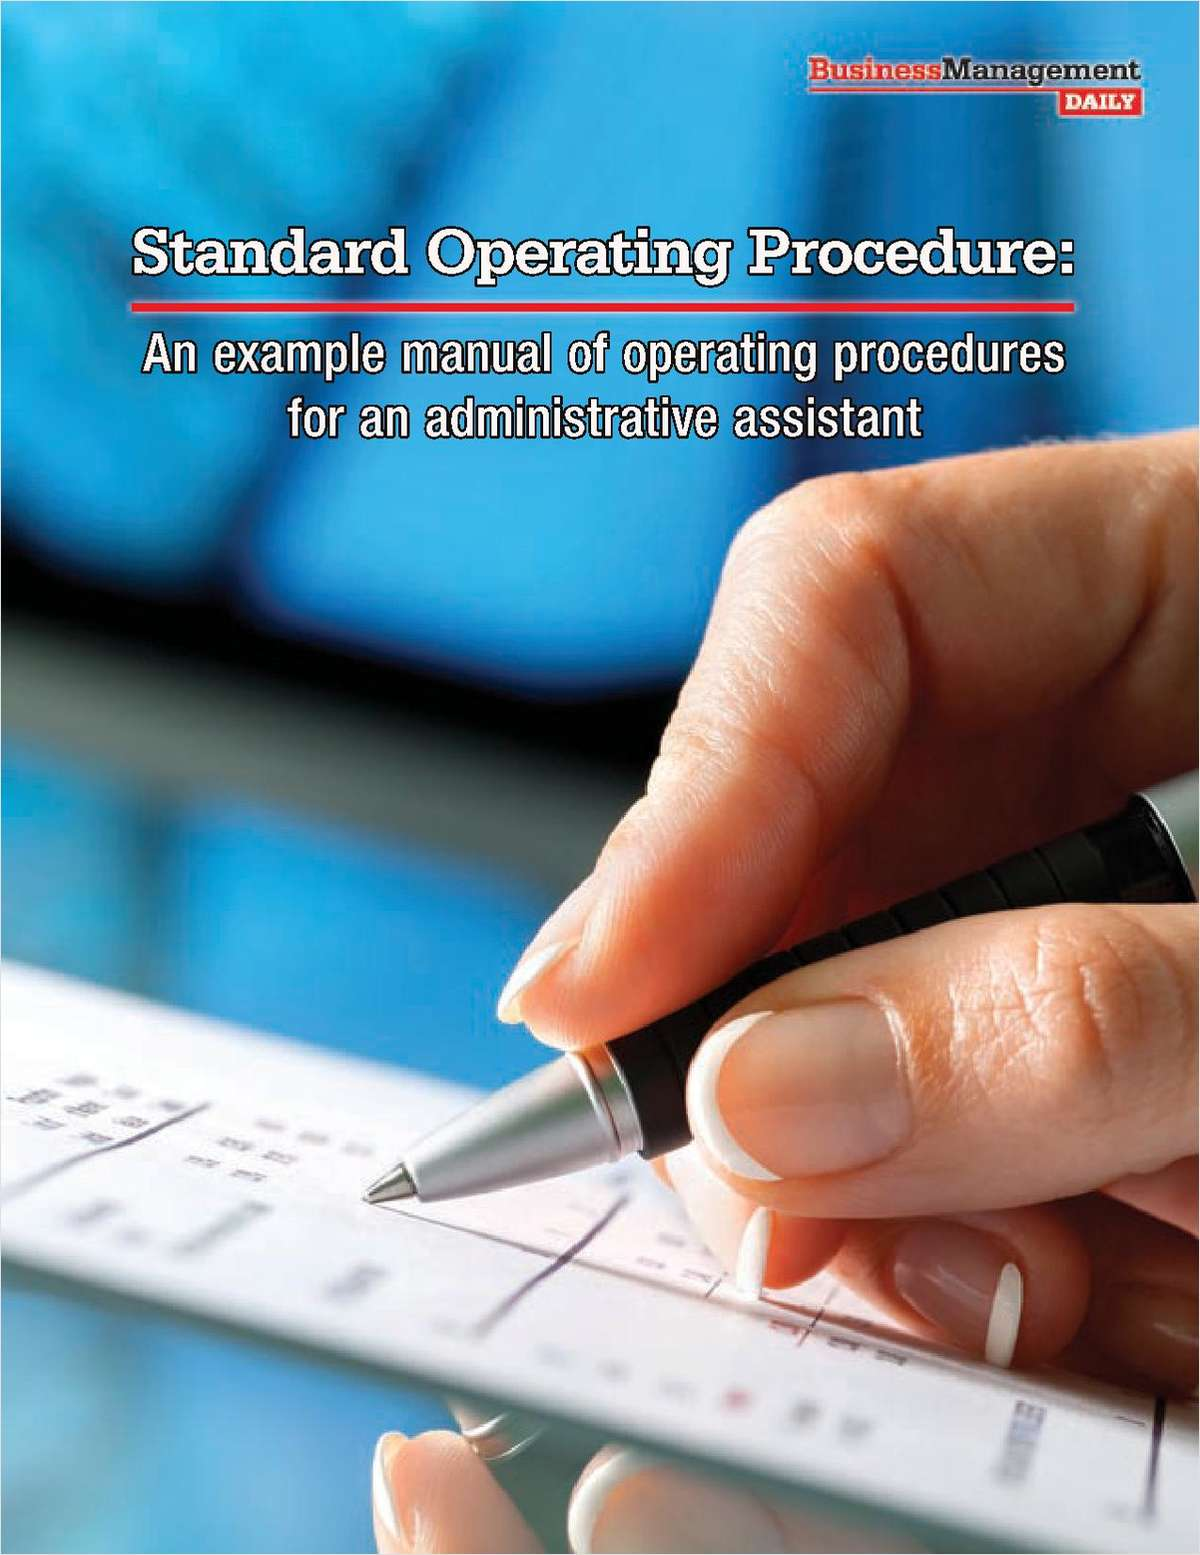 Standard Operating Procedure: An Example Manual for Administrative Professionals